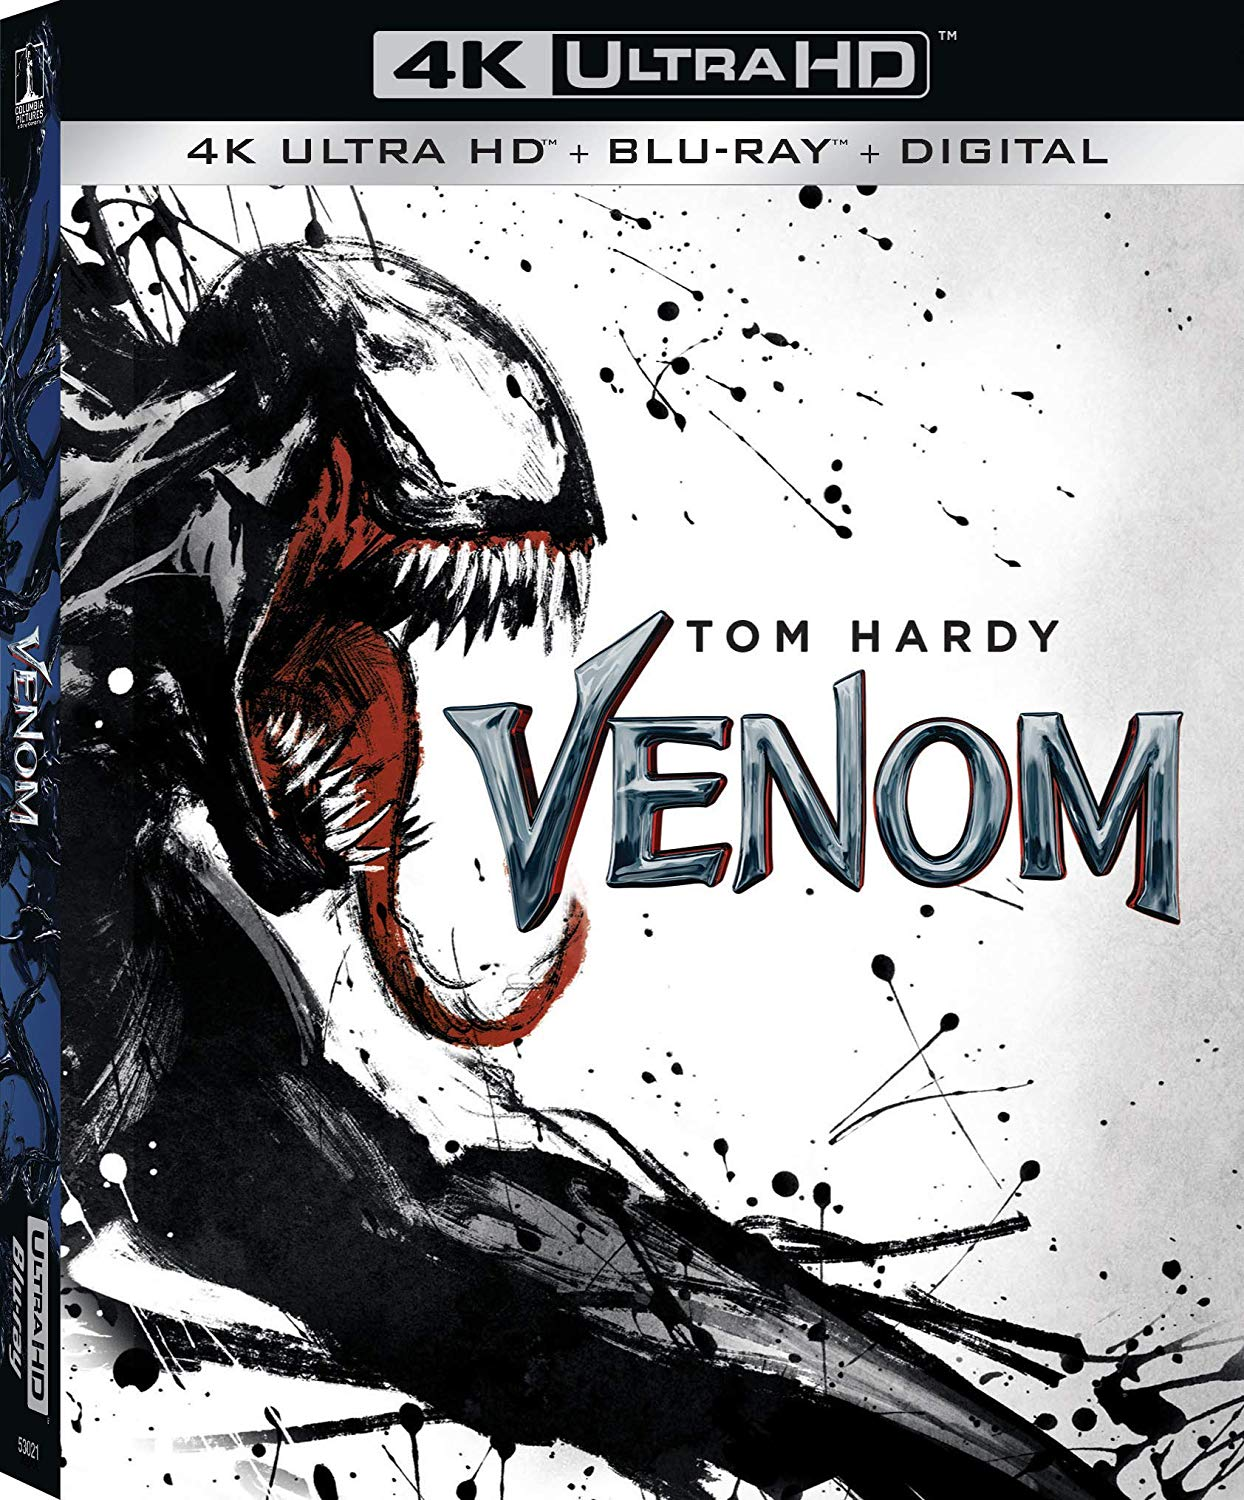 Venom 4K UK Blu-Ray